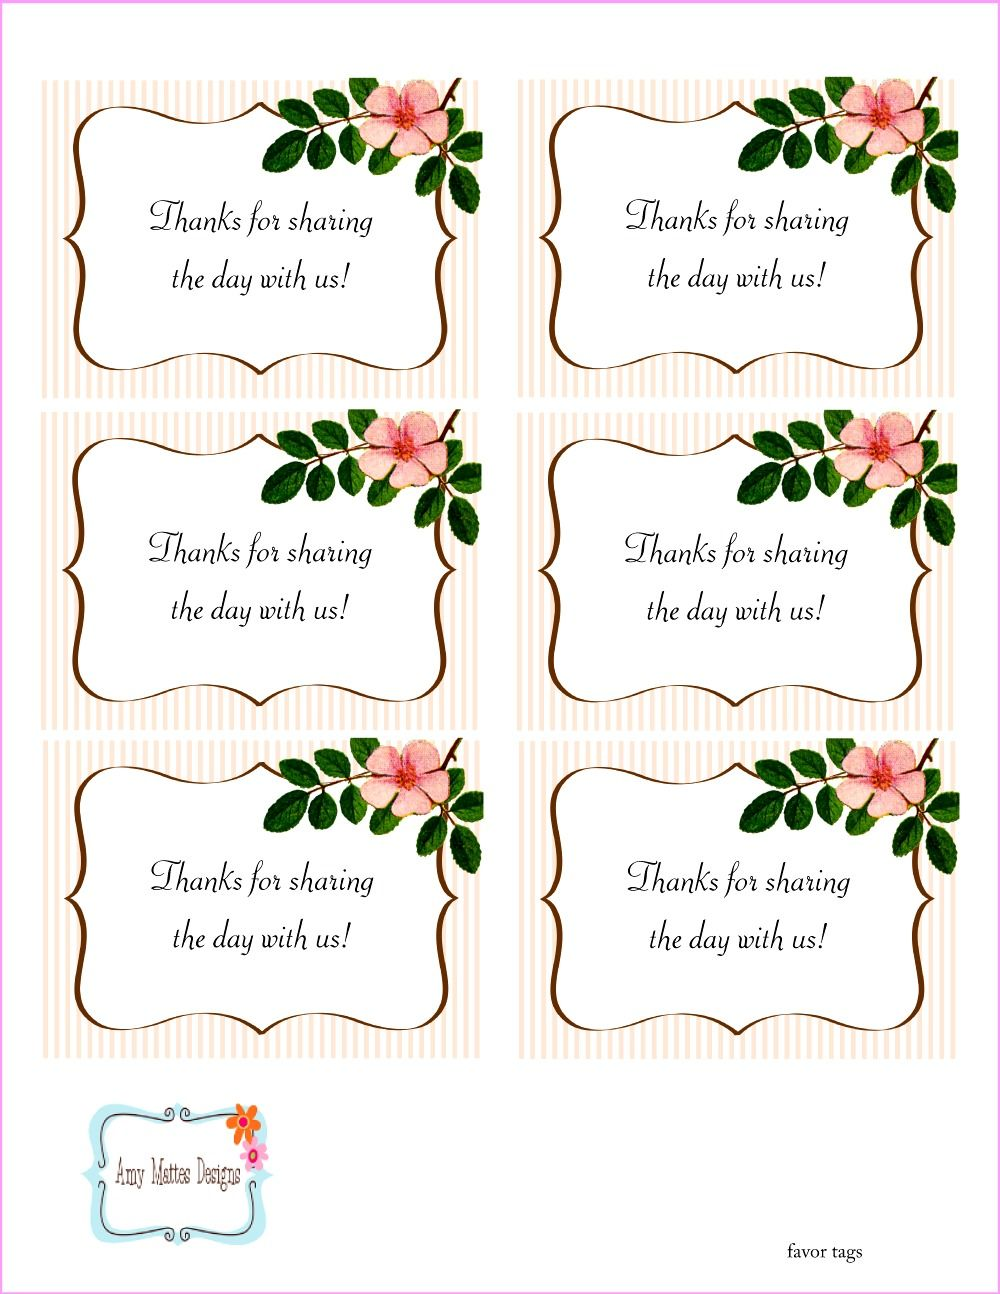 photo relating to Free Printable Wedding Favor Tags named The Desirable Wedding day Choose Tags as our ideny: cost-free